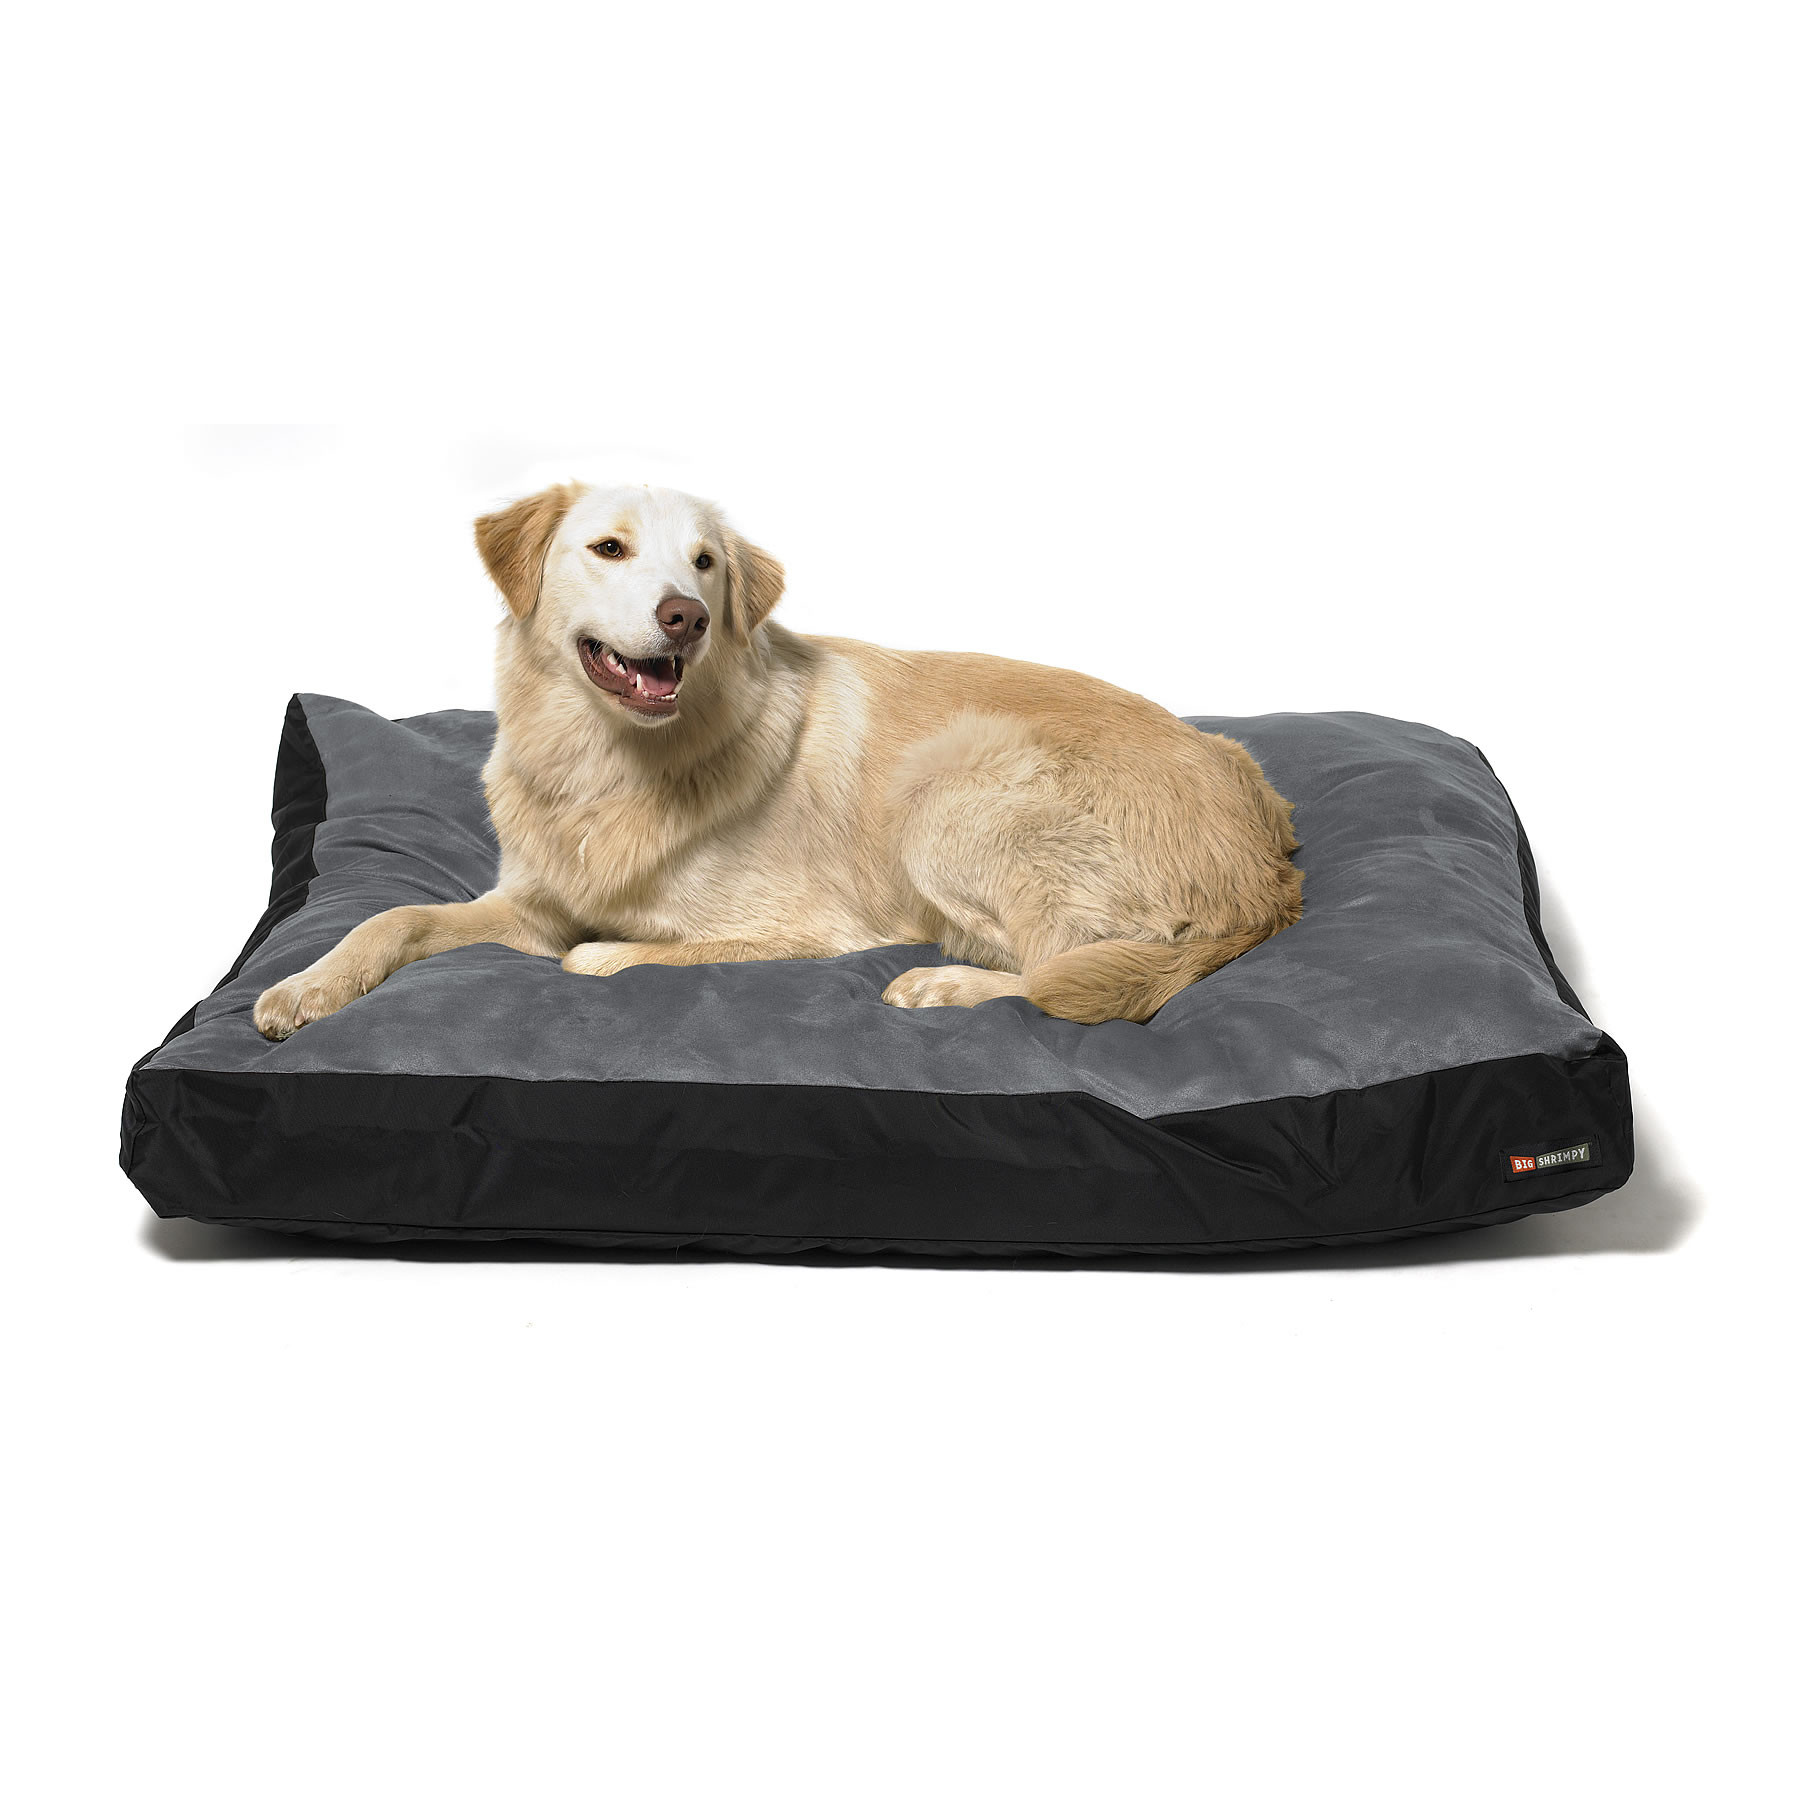 comfort with beds ideas ped indestructible bed large for chew pet tough proof supplies and clean also andersonesque dog decor